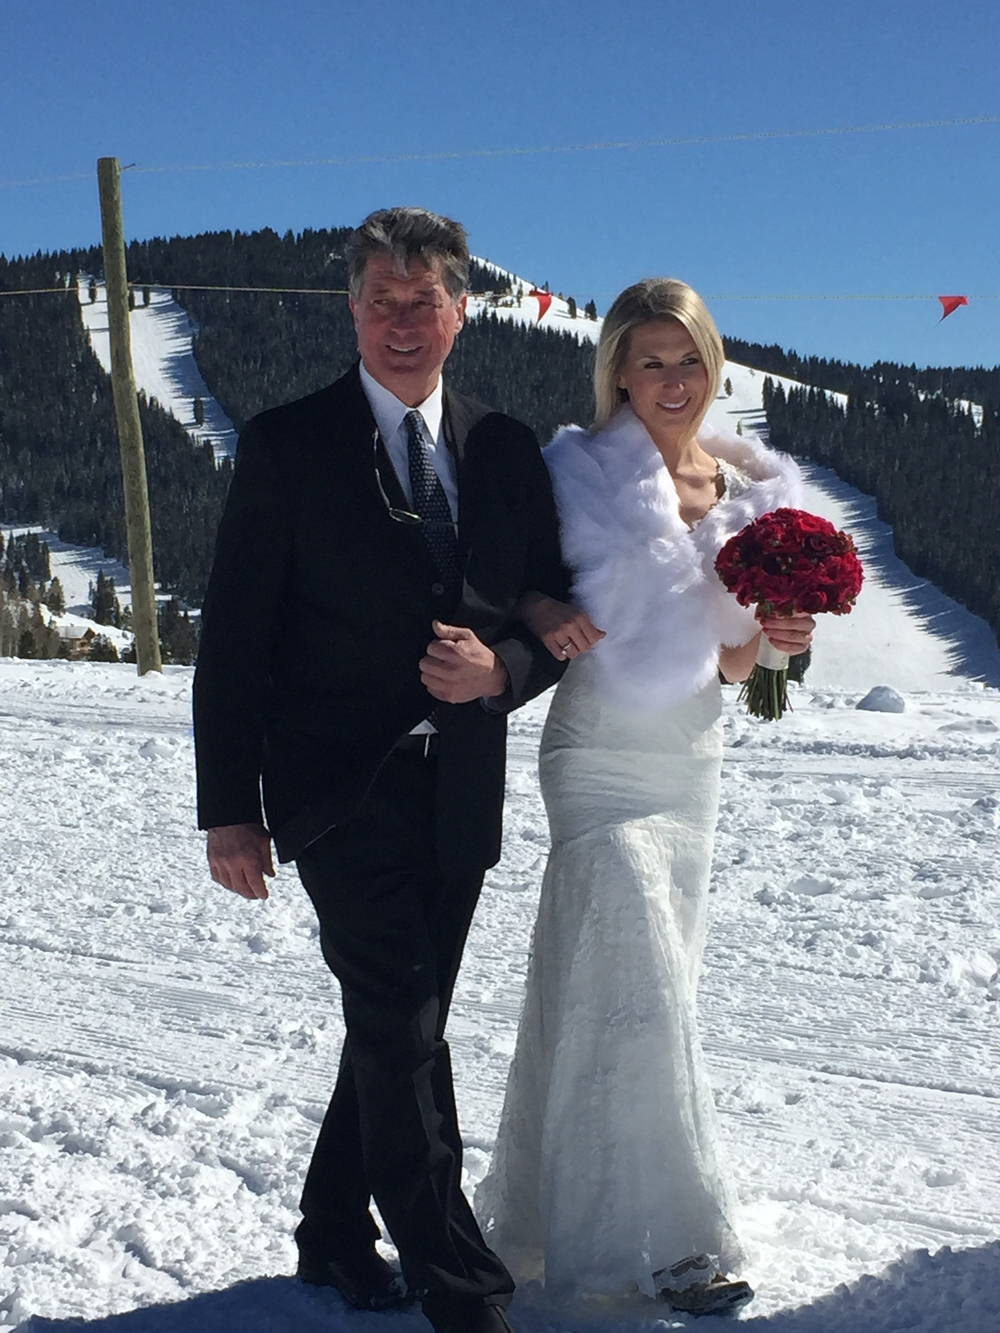 vail-wedding-snow-aisle